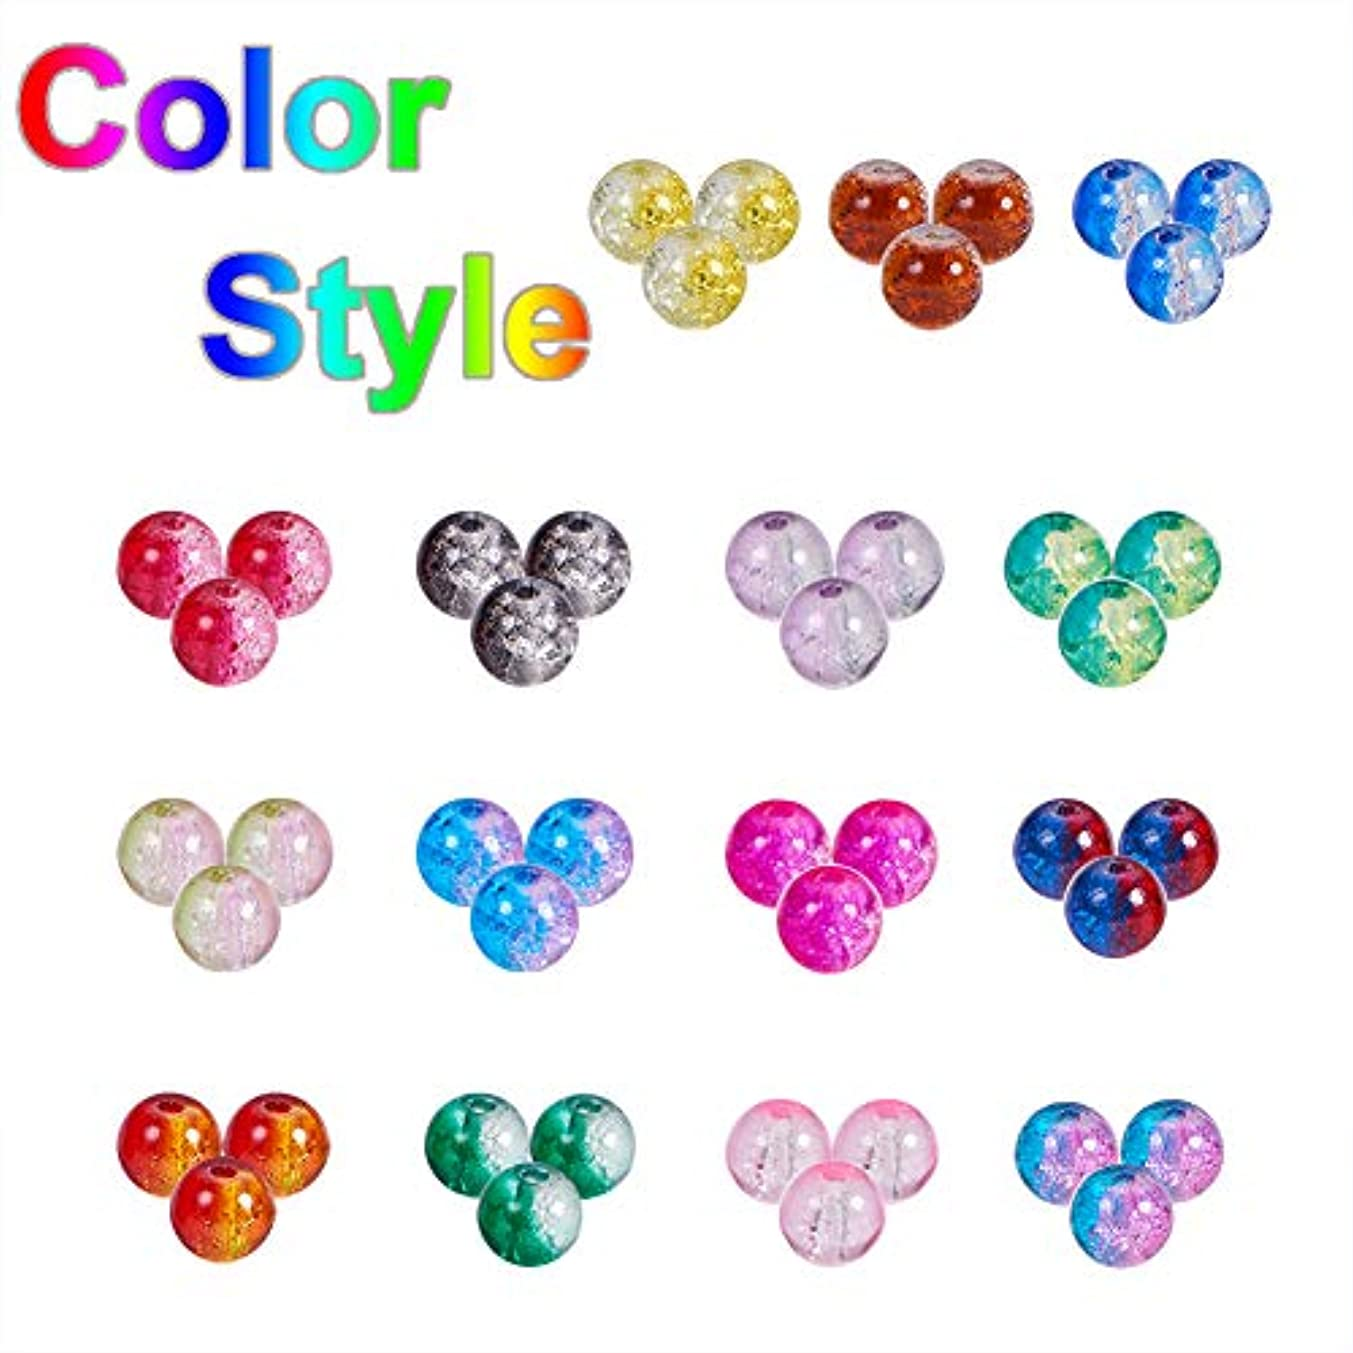 PH PandaHall About 1050pcs 15 Color 6mm Round Spray Painted Crackle Glass Beads with Crystal Elastic Thread